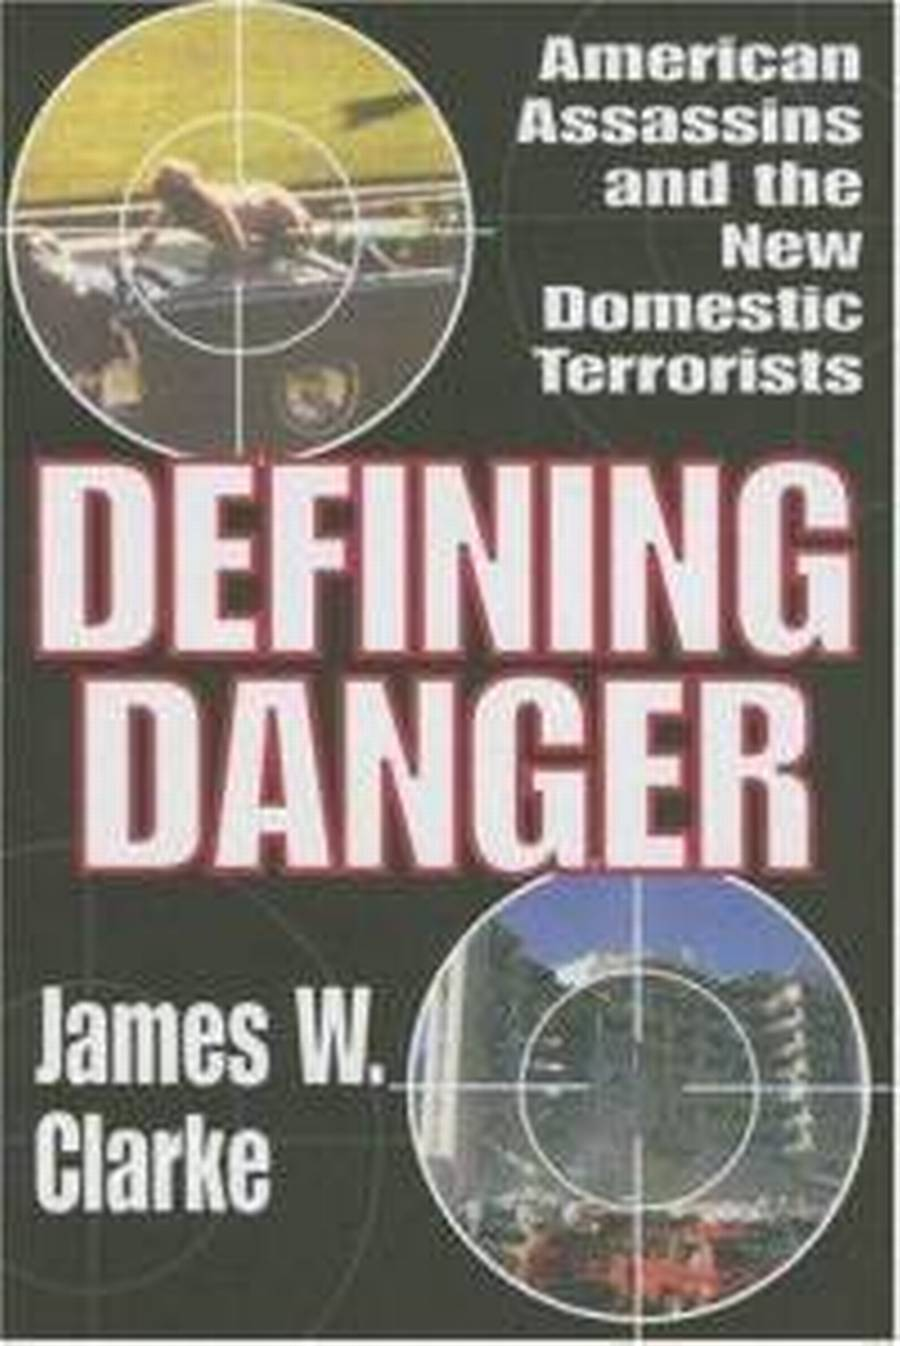 James W. Clarkes nye bog, 'Defining Danger: American Assassins and the New Domestic Terrorists' er også udkommet på det europæiske bogmarked.